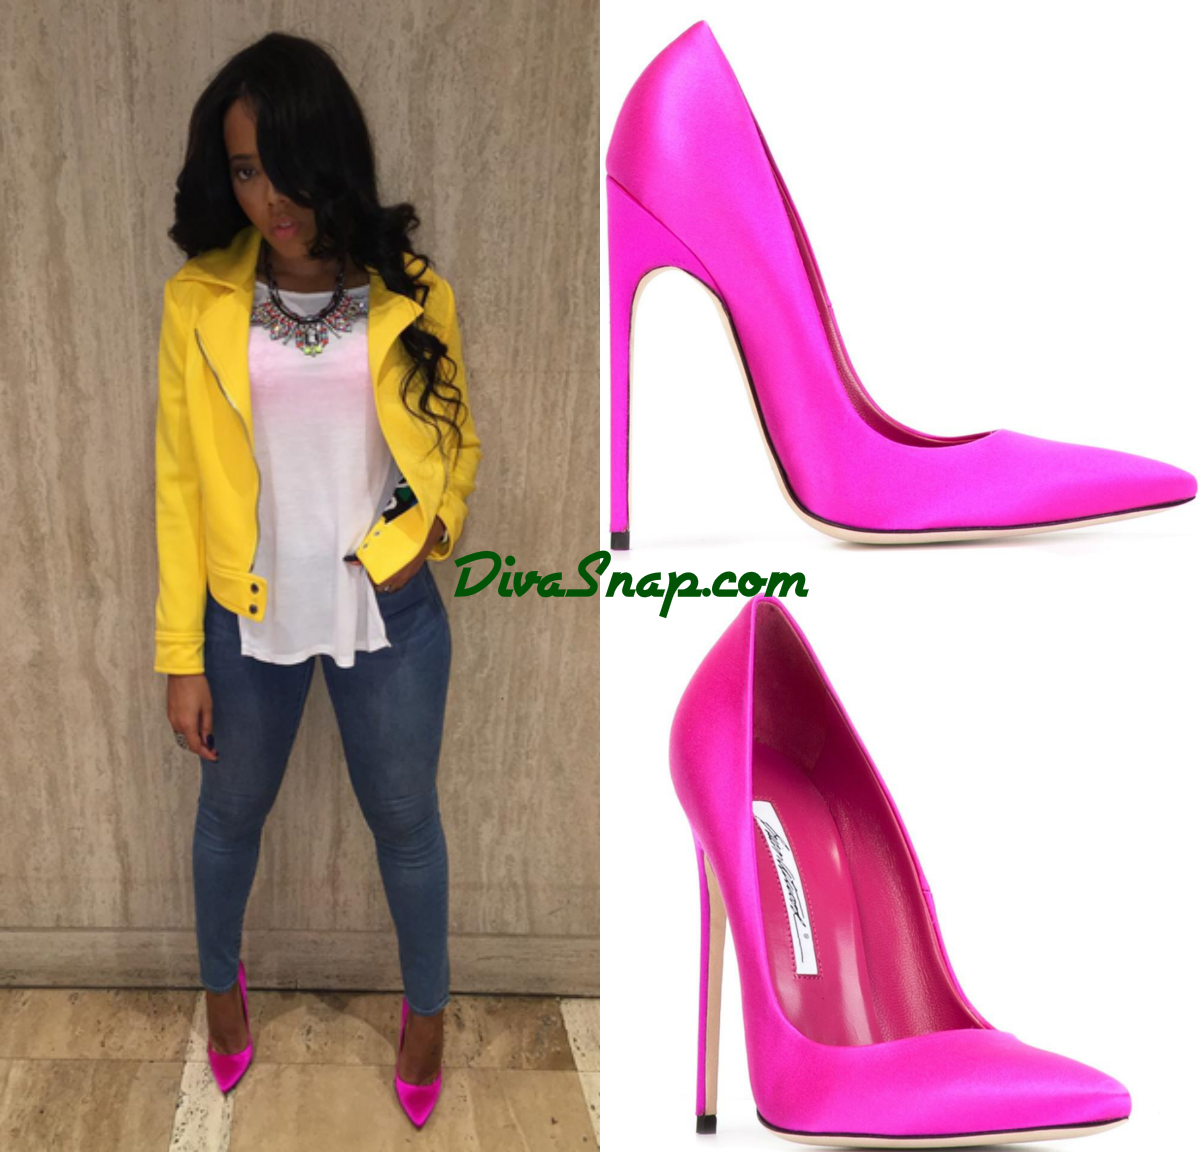 SHOE DIVA: ANGELA SIMMONS SLIPPED IN A PAIR OF HAUTE PINK BRAIN ATWOOD  SATIN PUMPS TO ATTEND BROTHER JOJO SIMMONS U0026 GF BABY SHOWER ...{Photos}